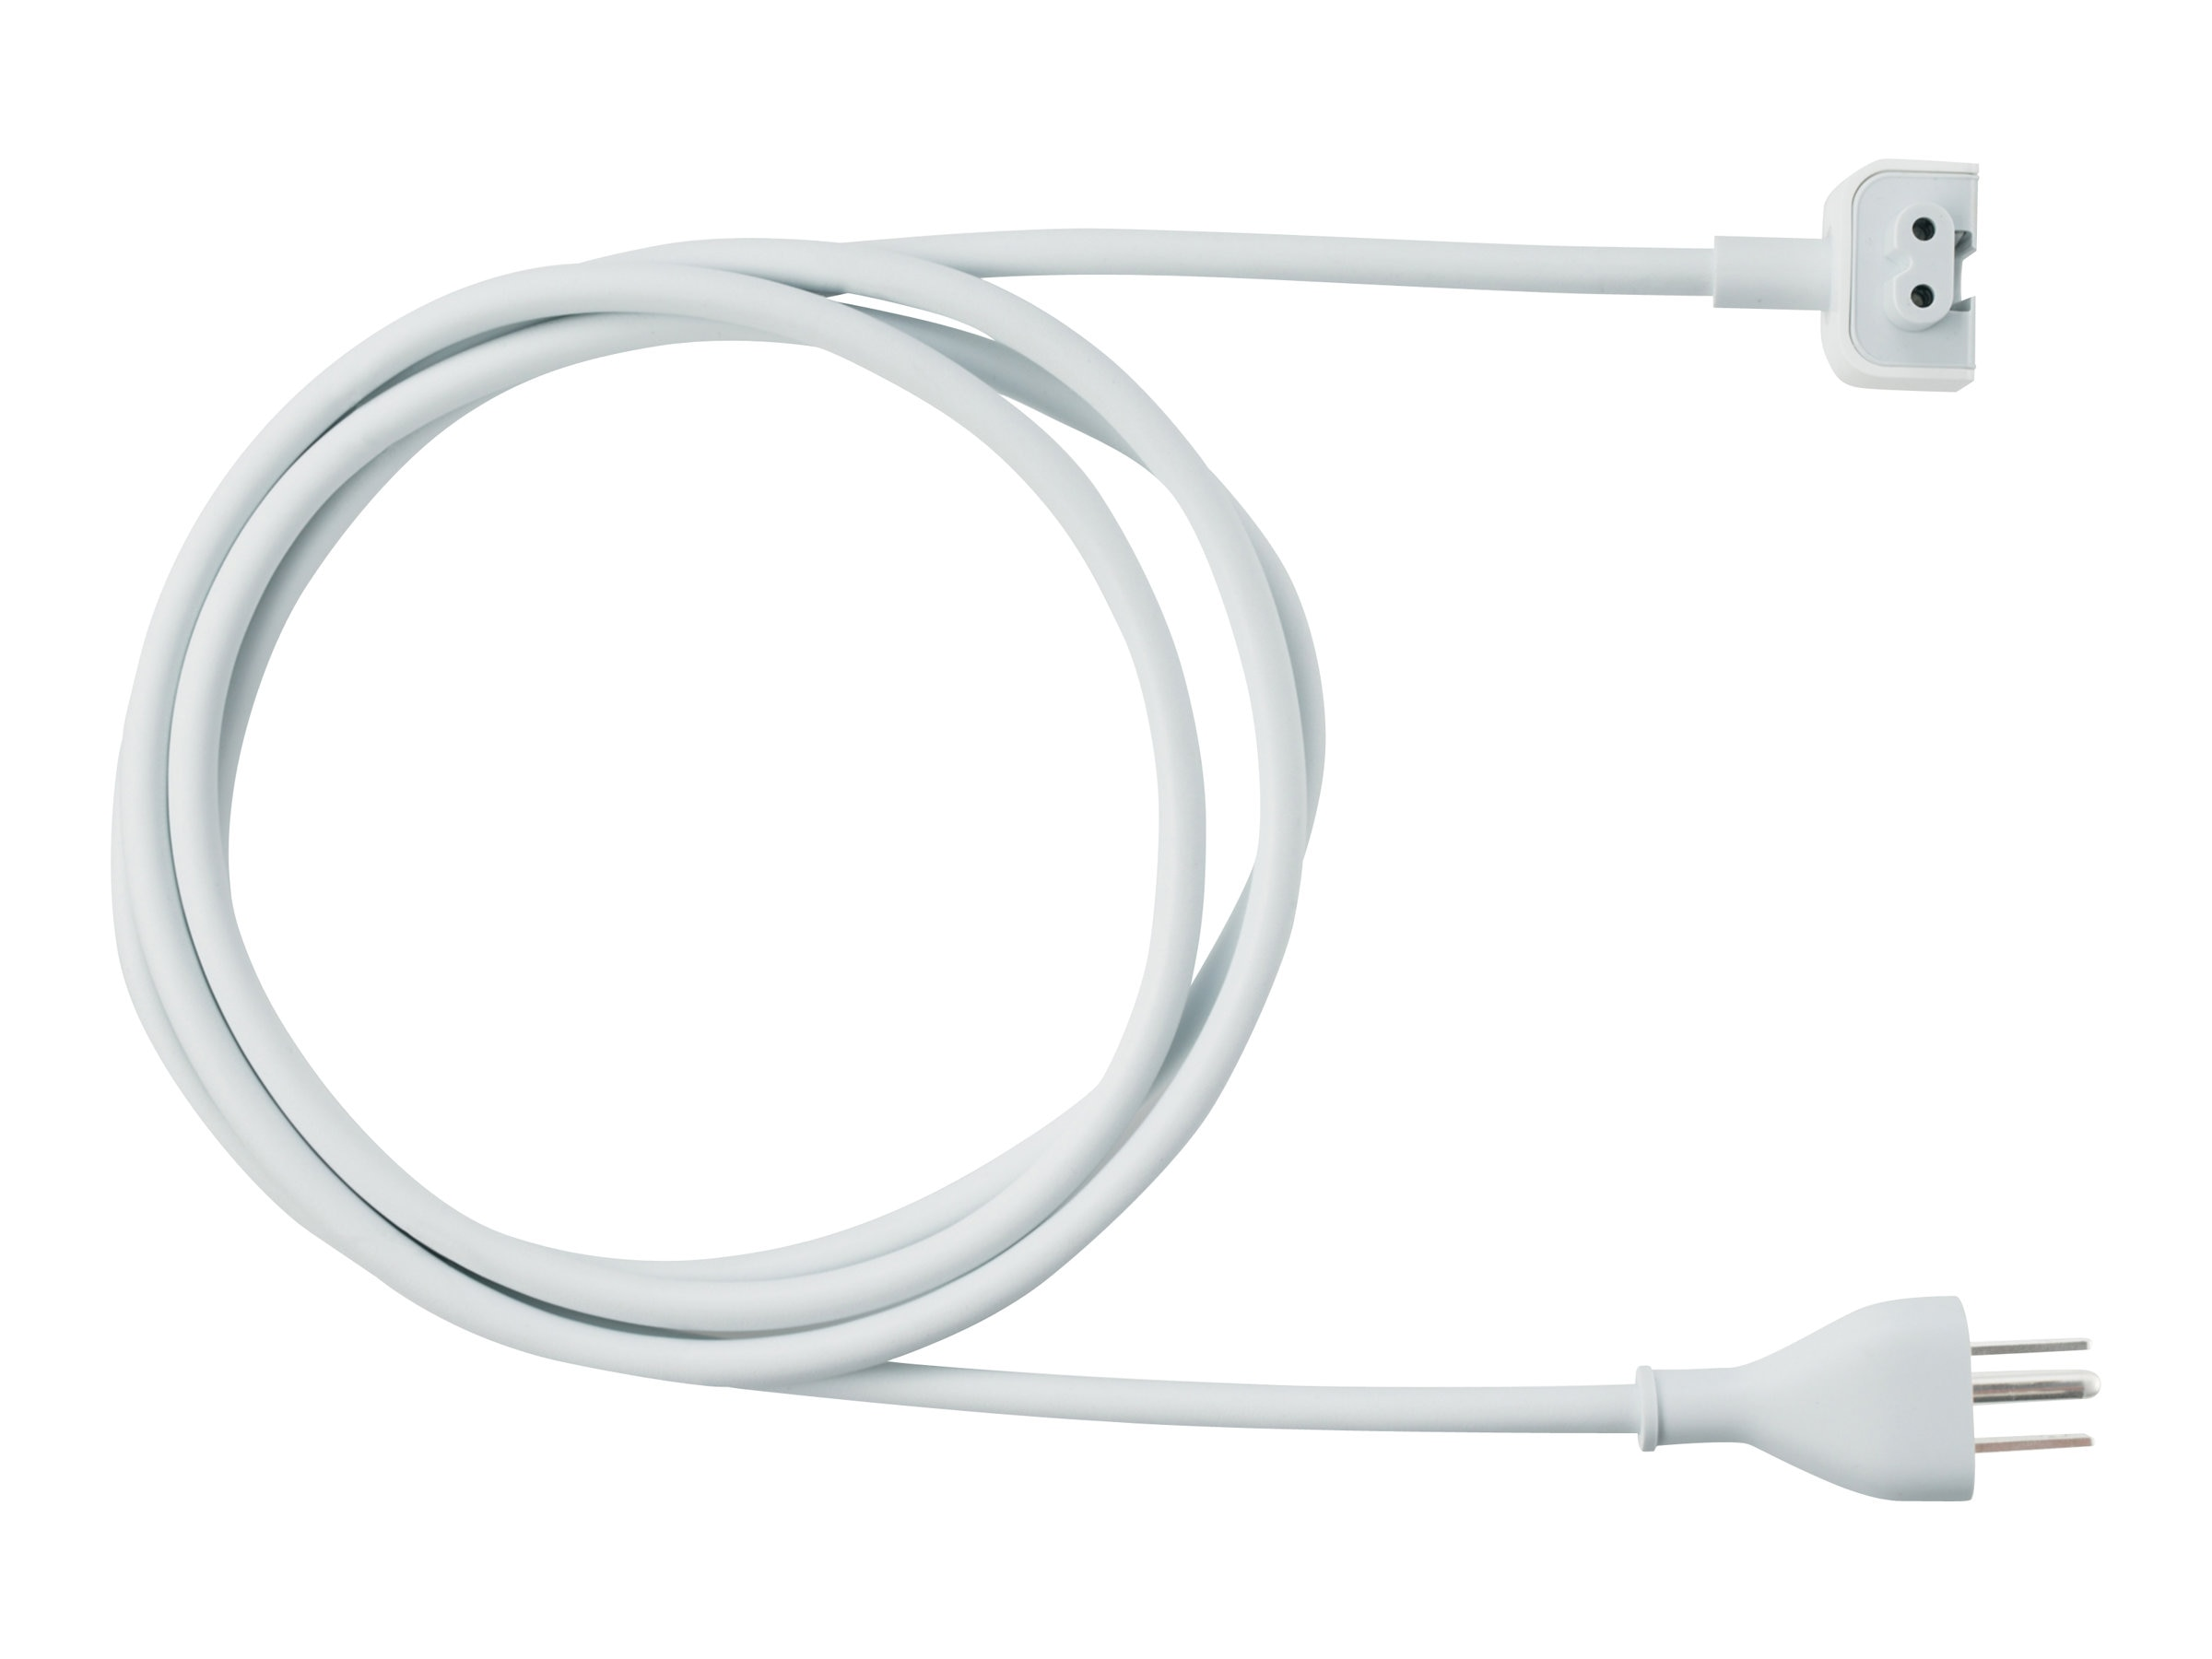 Apple Power Adapter Extension Cable, MK122LL/A, 18818290, Power Cords